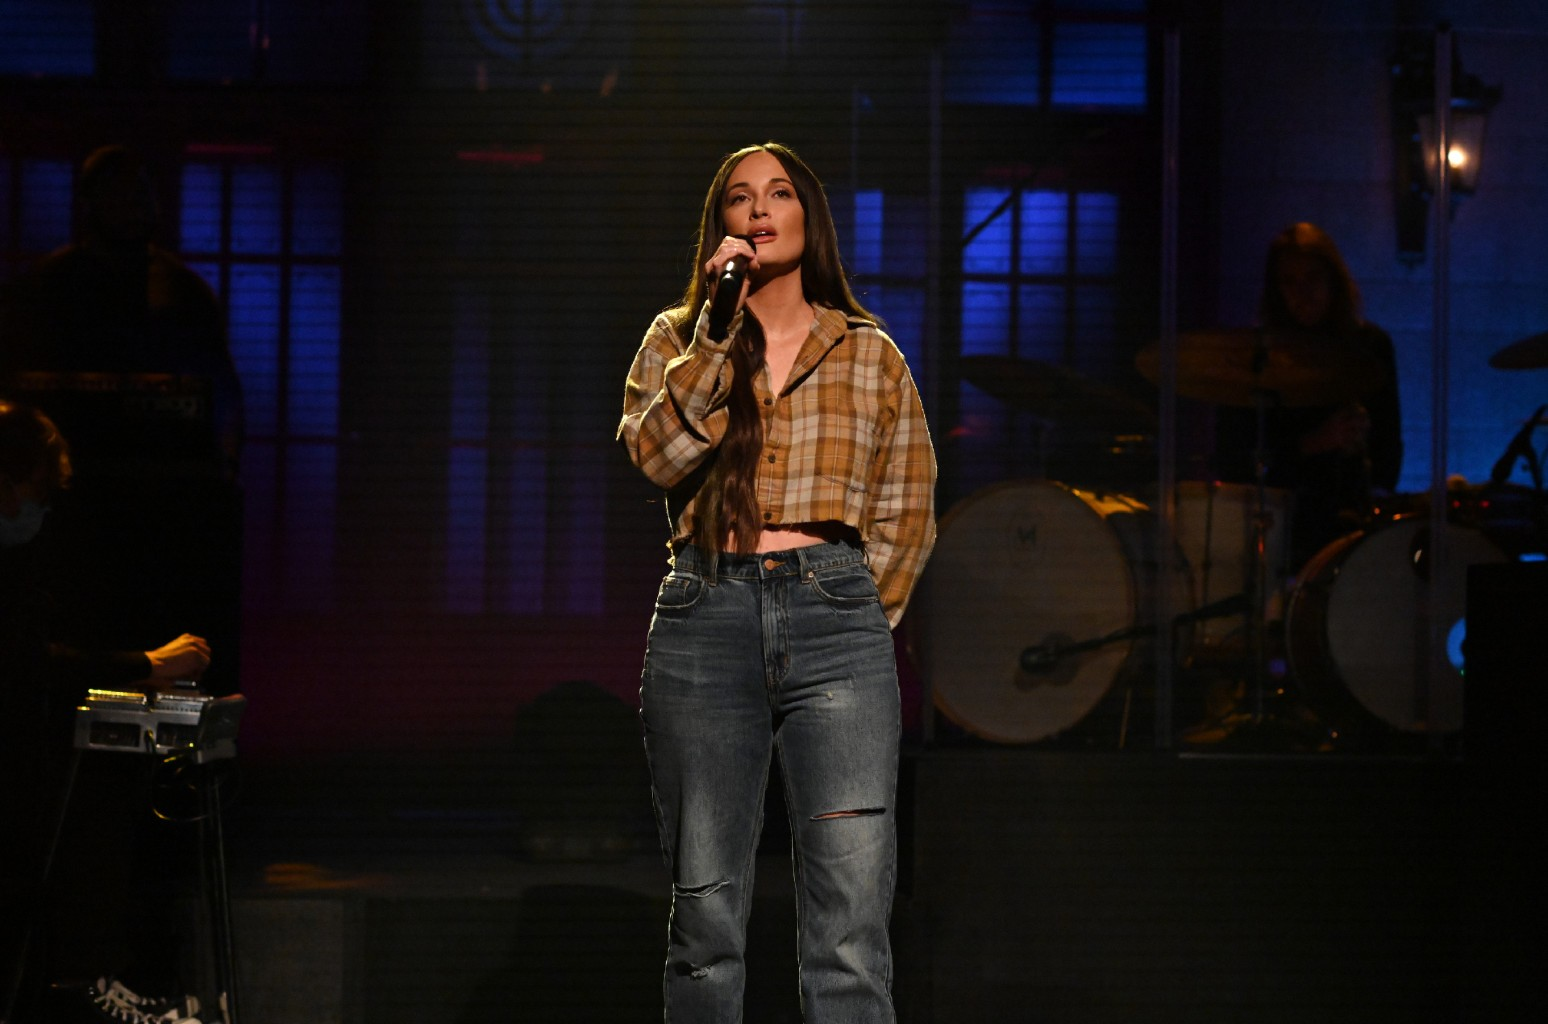 Kacey Musgraves Delivers Gorgeous 'Star-Crossed' Songs on 'SNL' Season Premiere